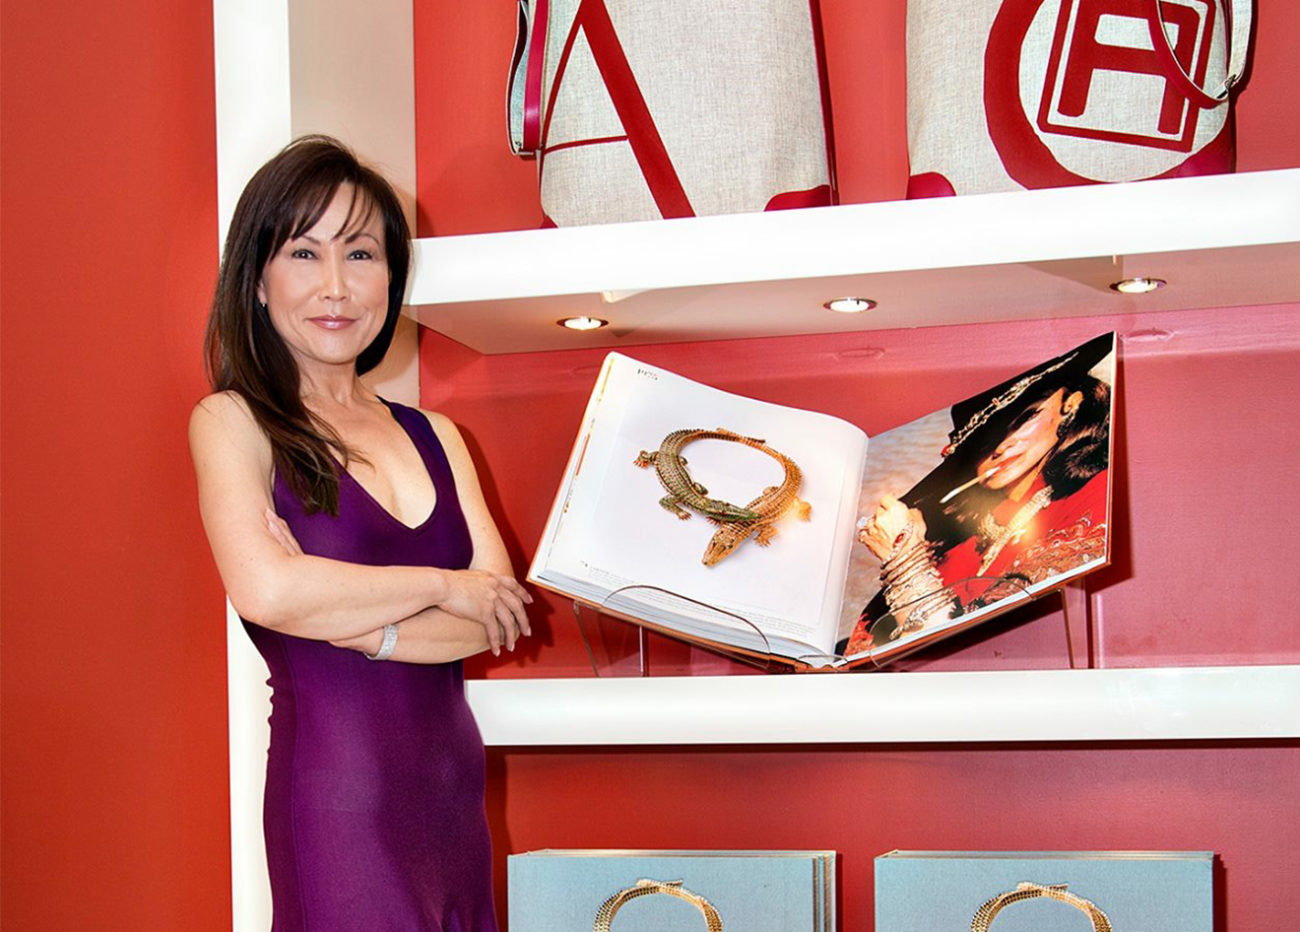 Suzan Lee luxury handbag designer